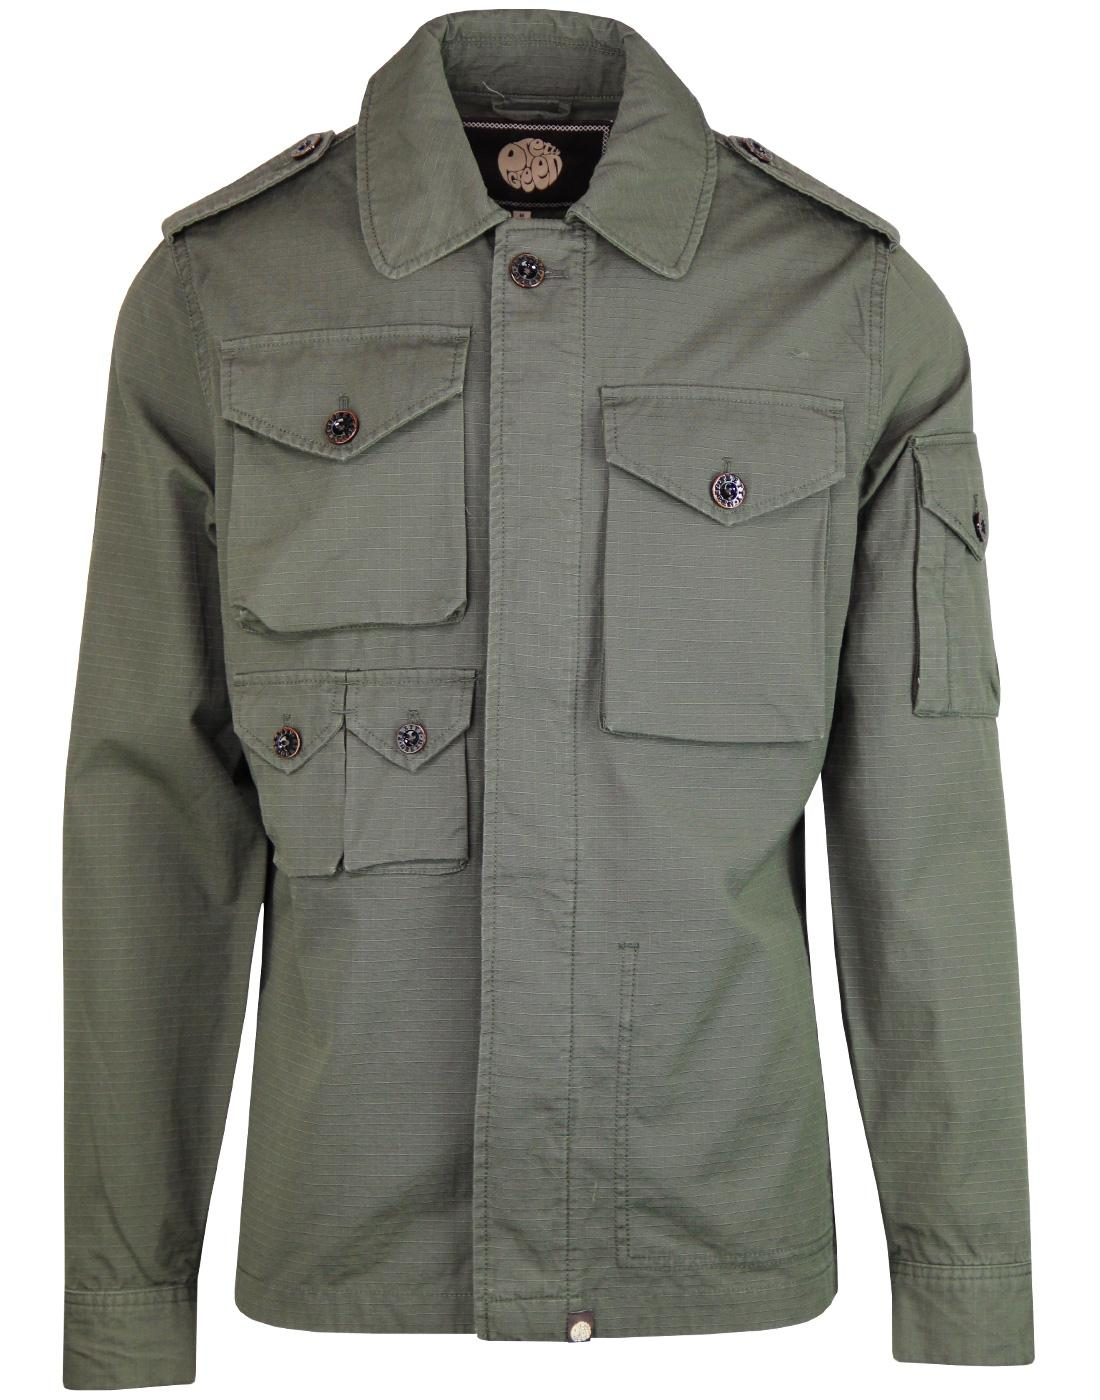 PRETTY GREEN Men's Mod M65 Military Field Jacket